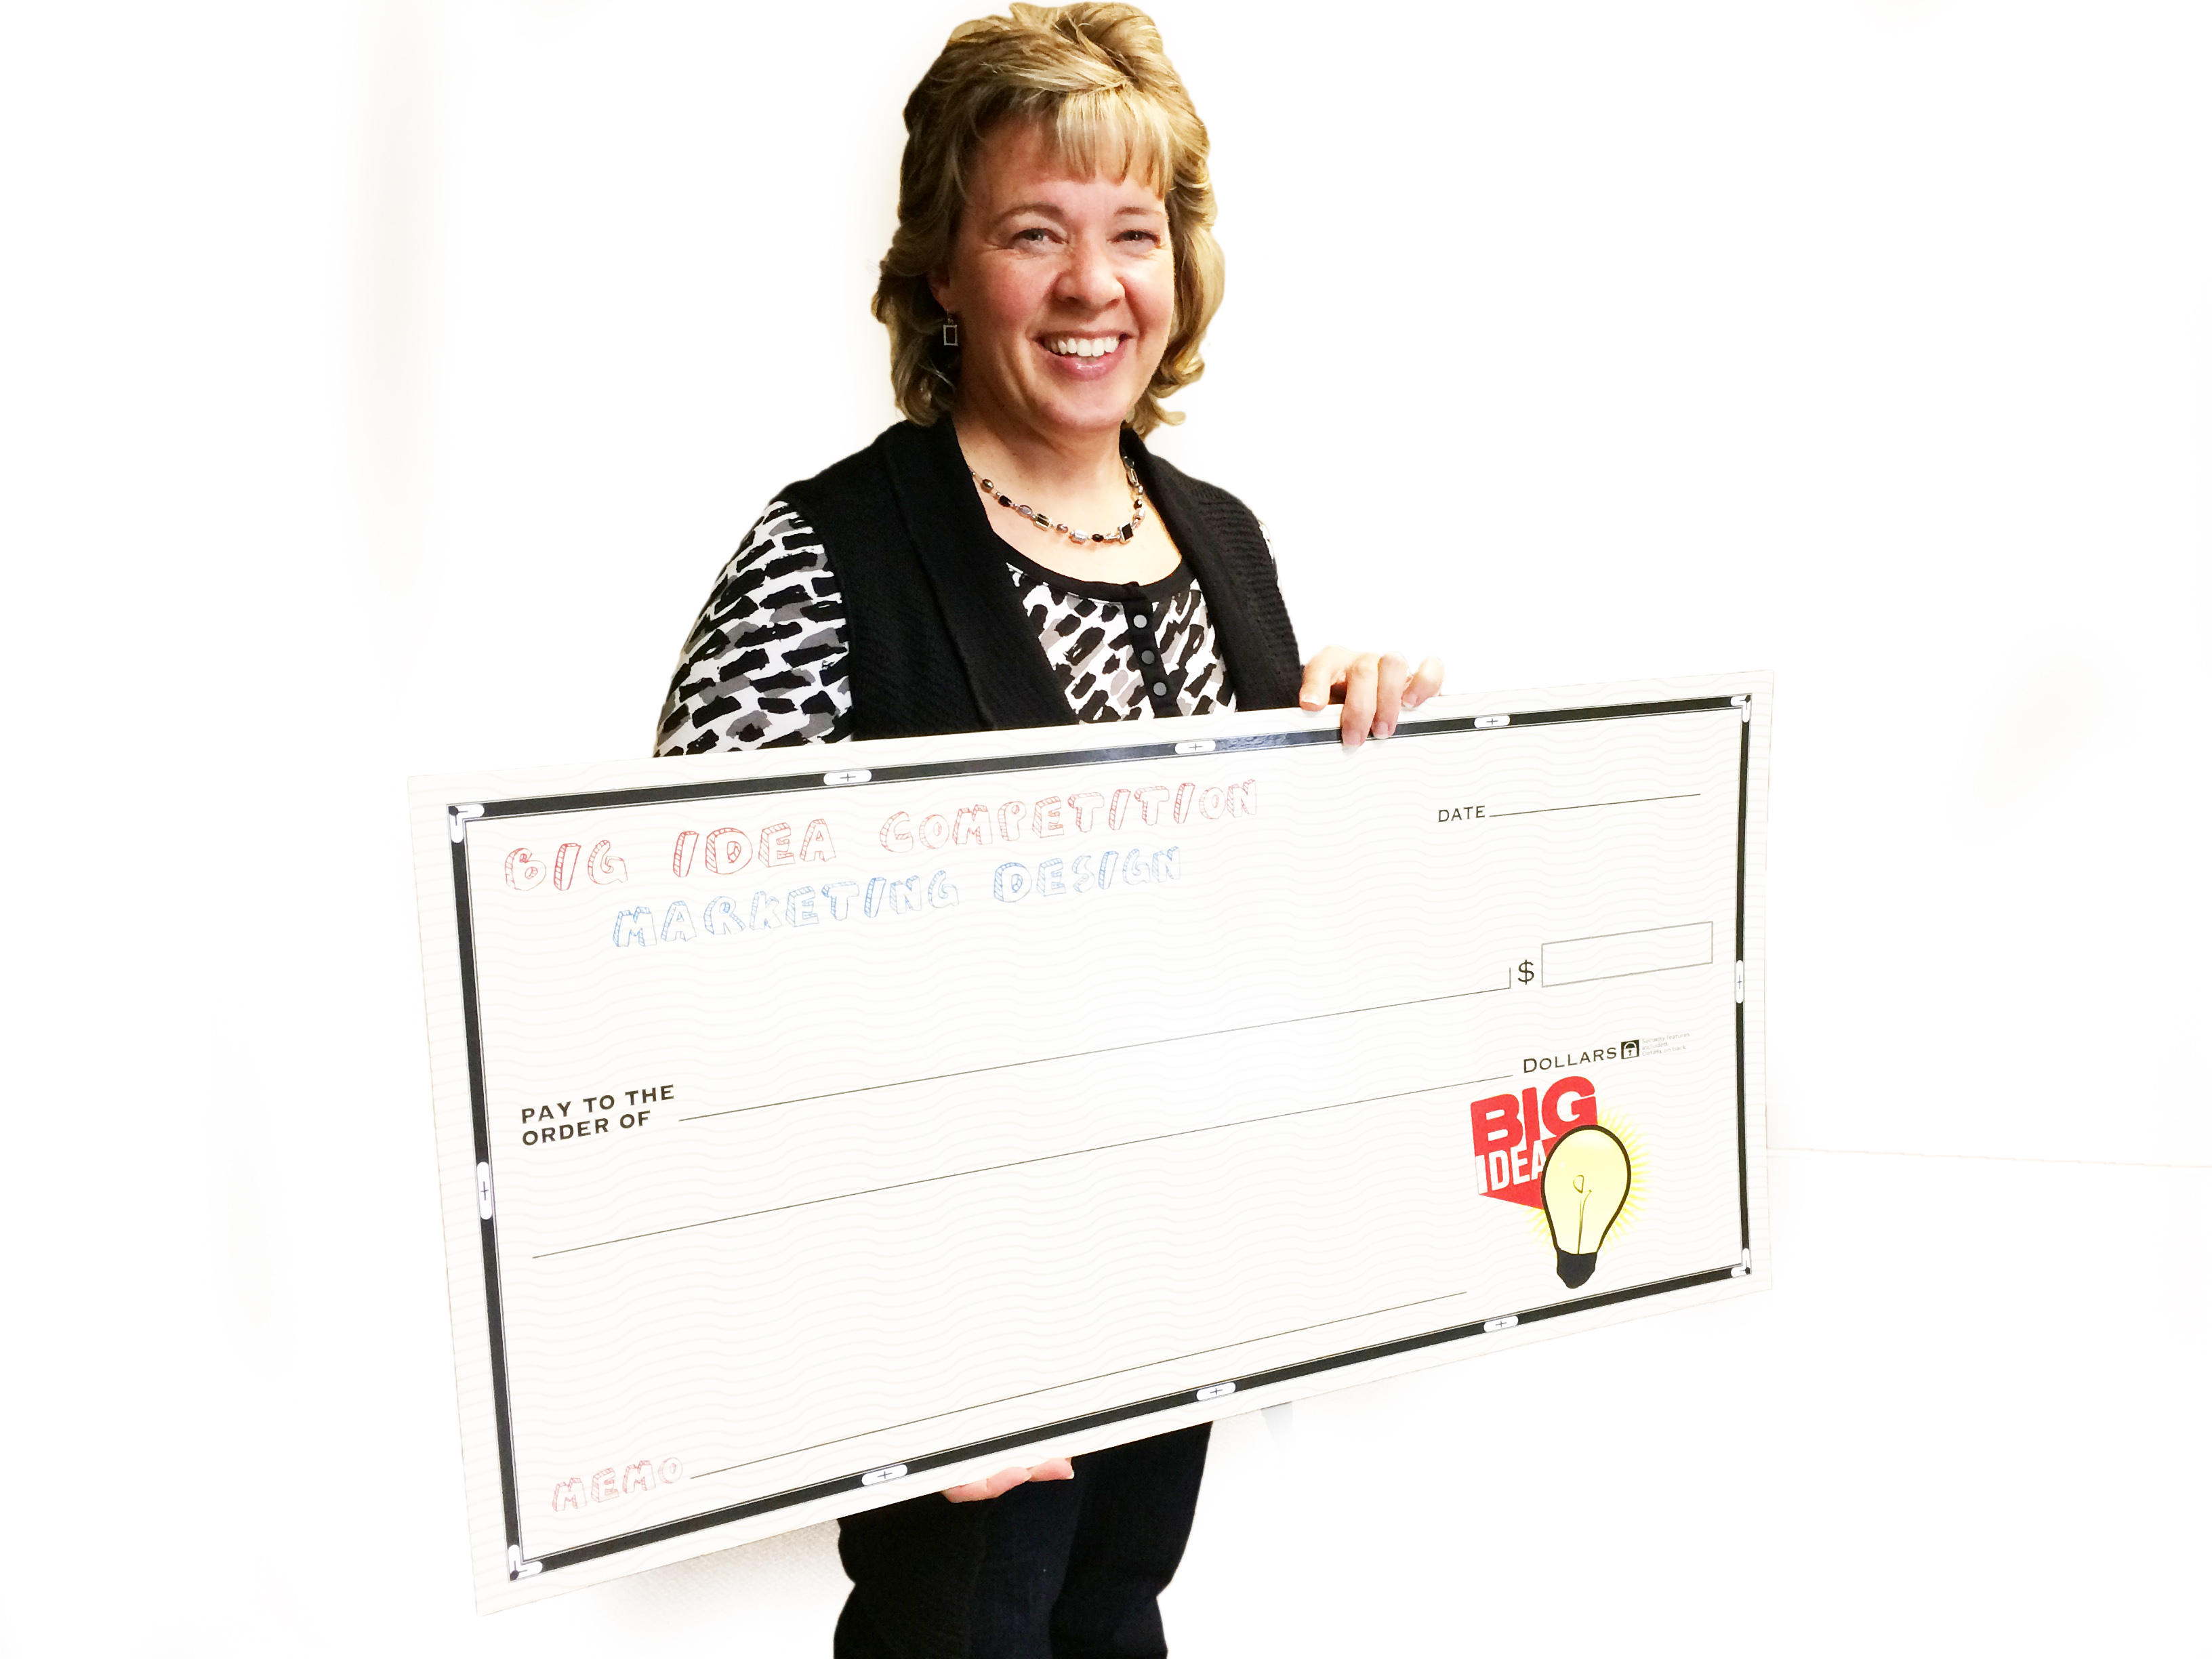 Kelly Weaver has checks ready to present to each of the winners in the Big Idea contest. Photo by Heidi Marttila-Losure